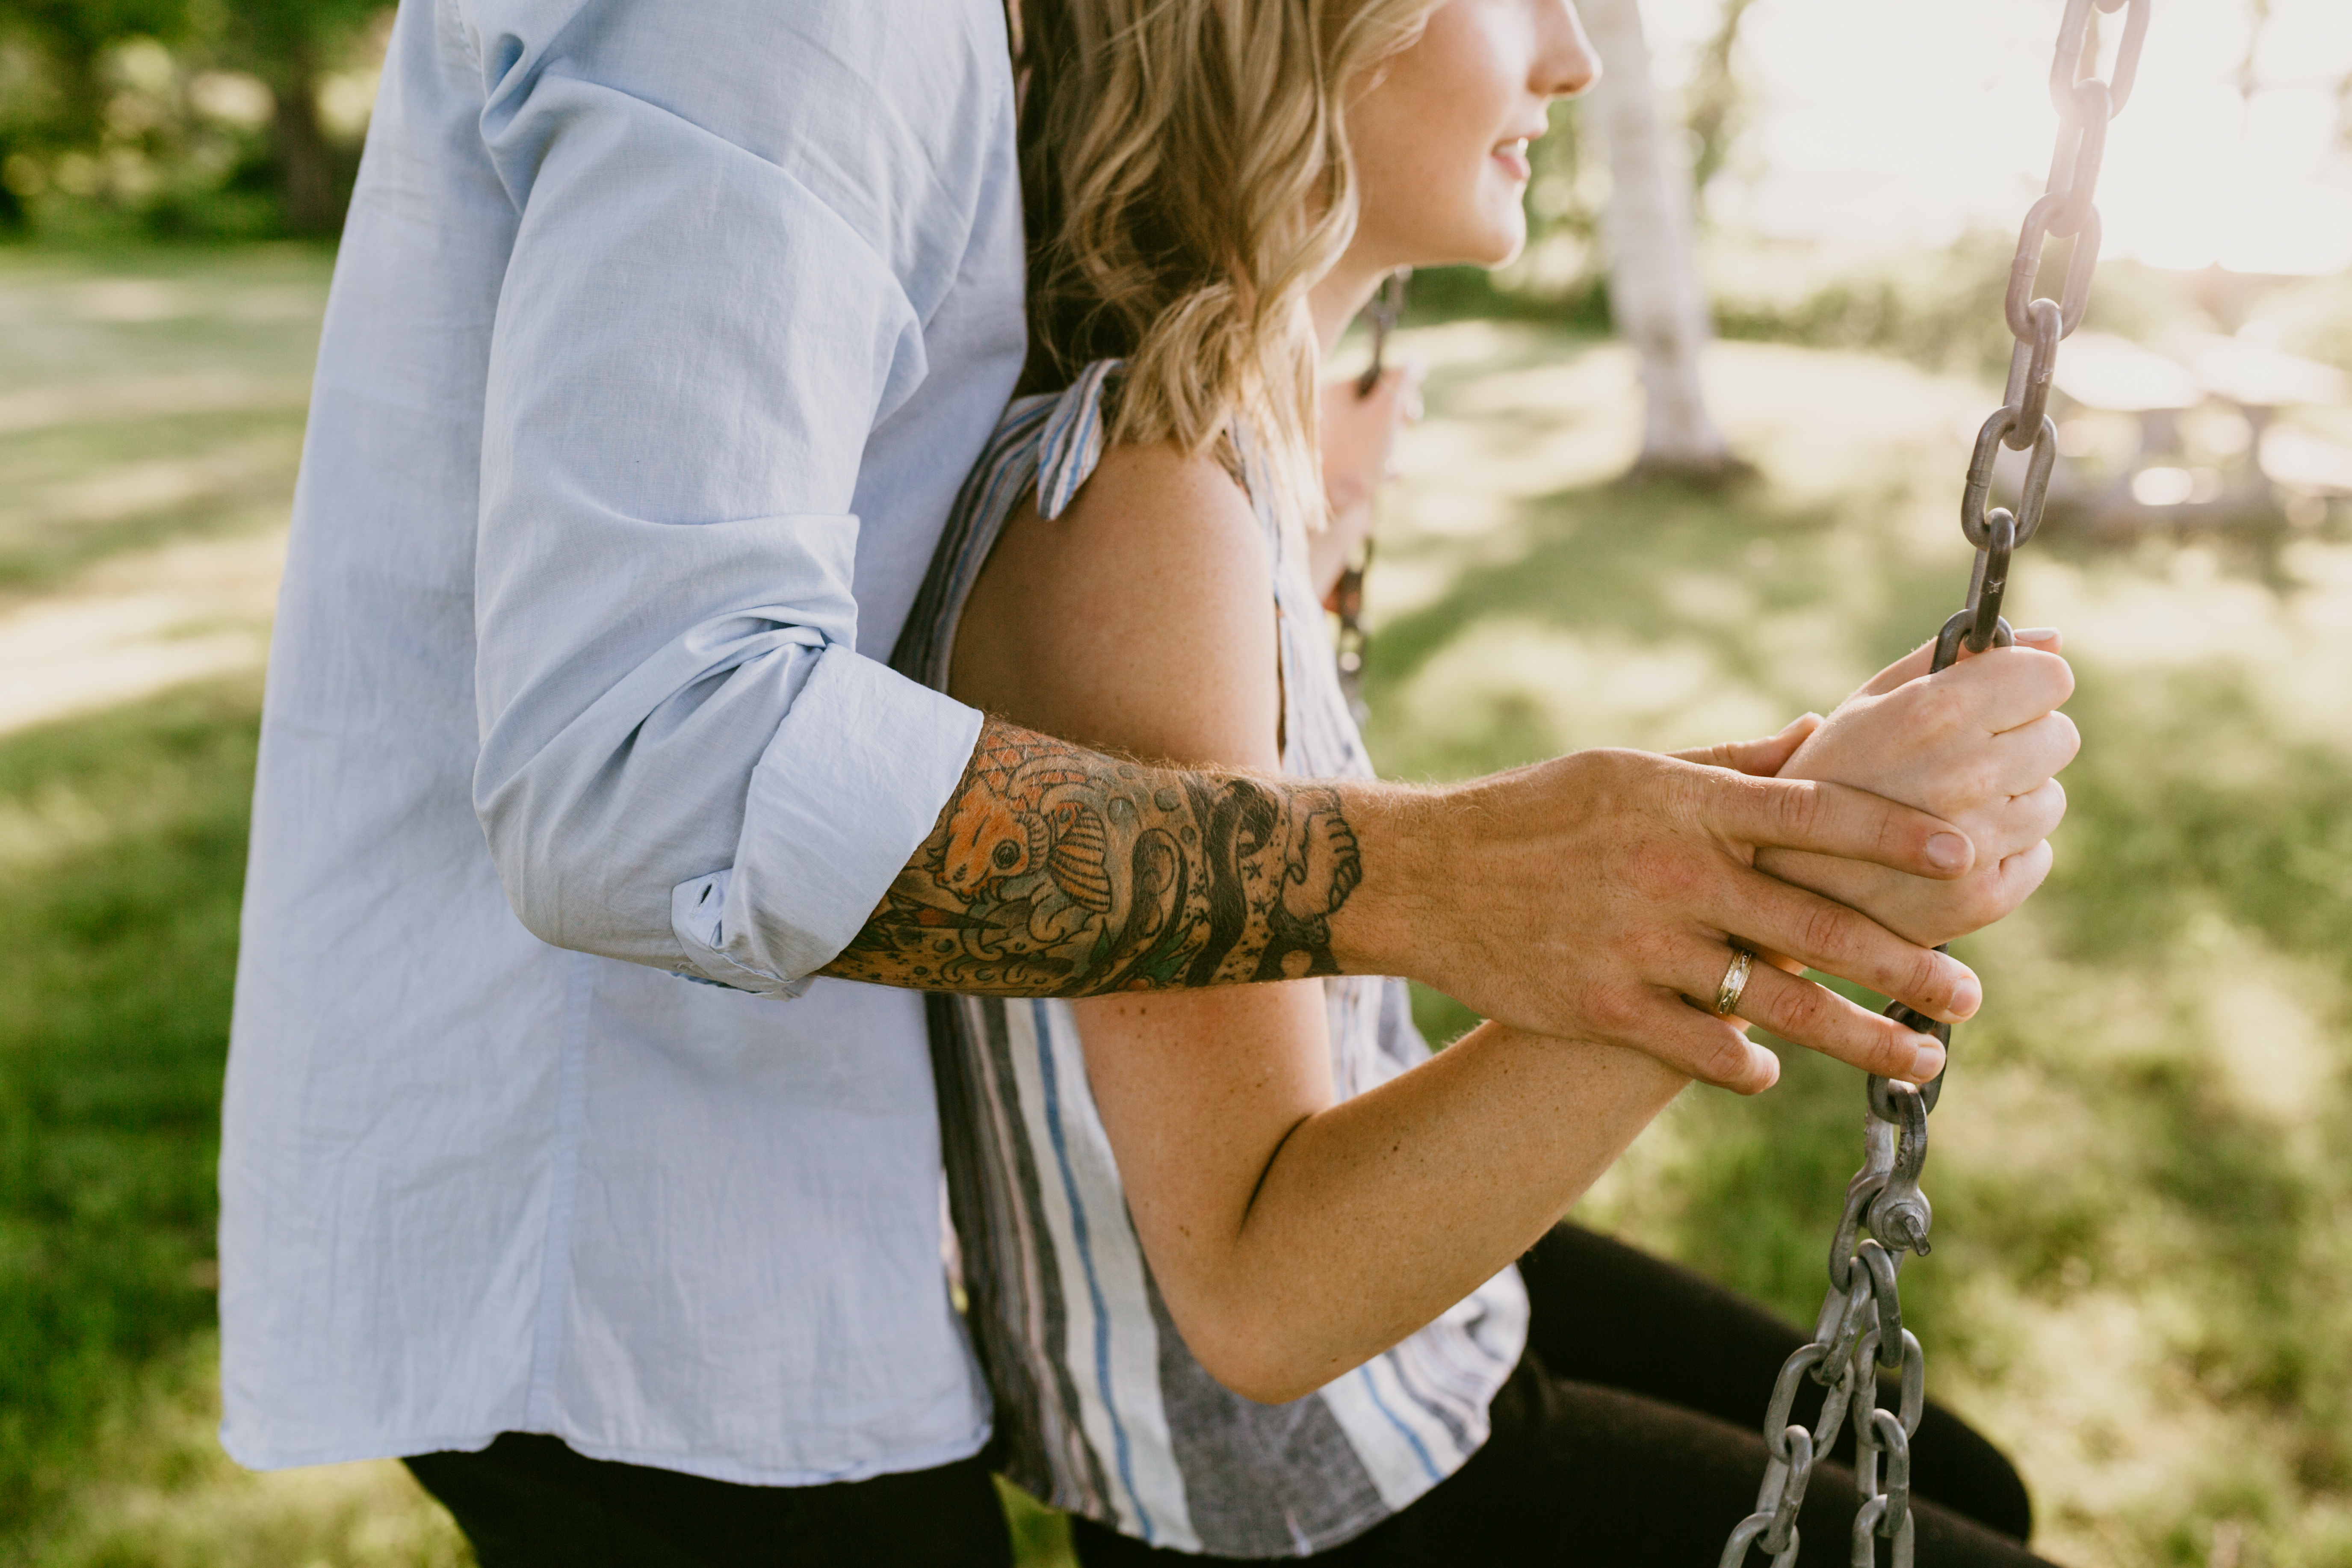 guy with tatto pushing fiance on swing